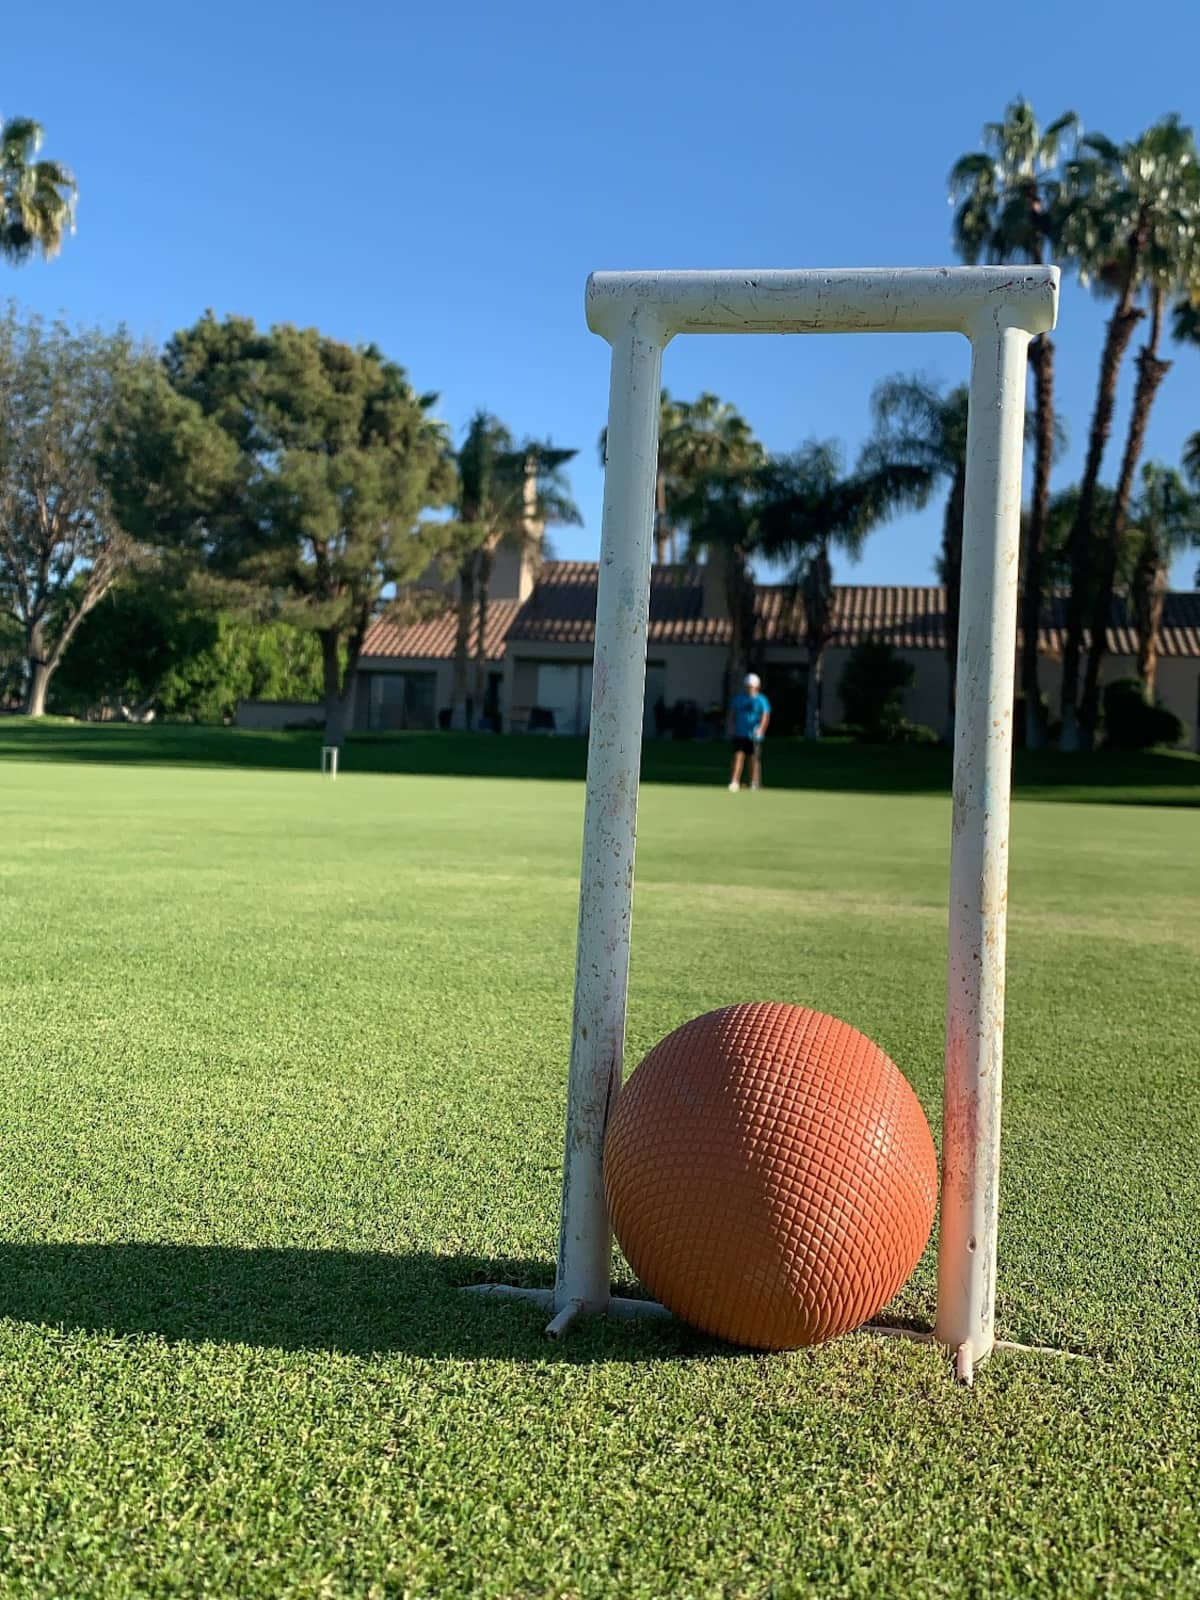 Croquet lawn and ball